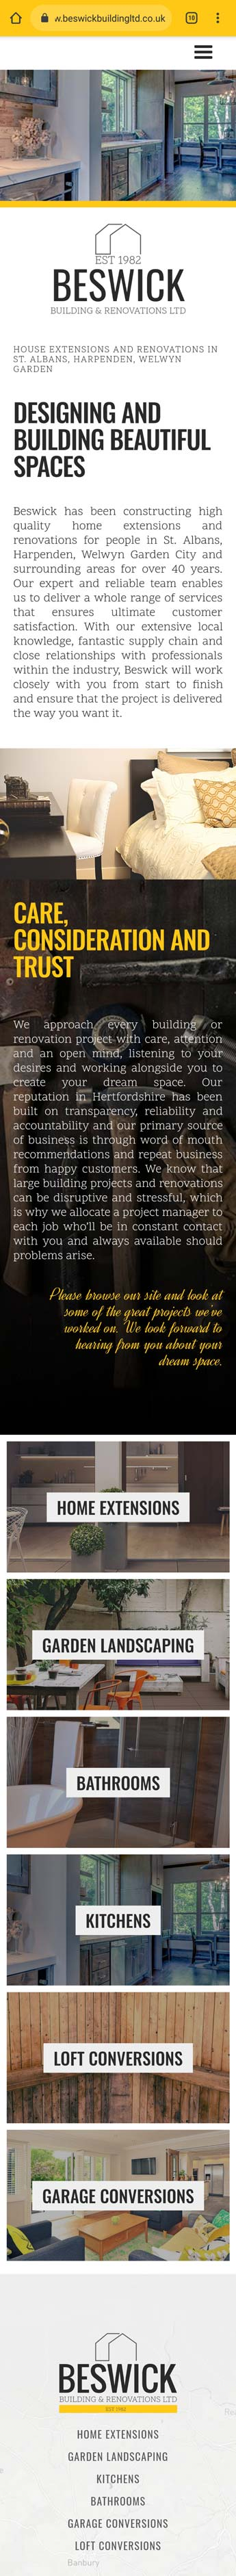 Construction industry website design image